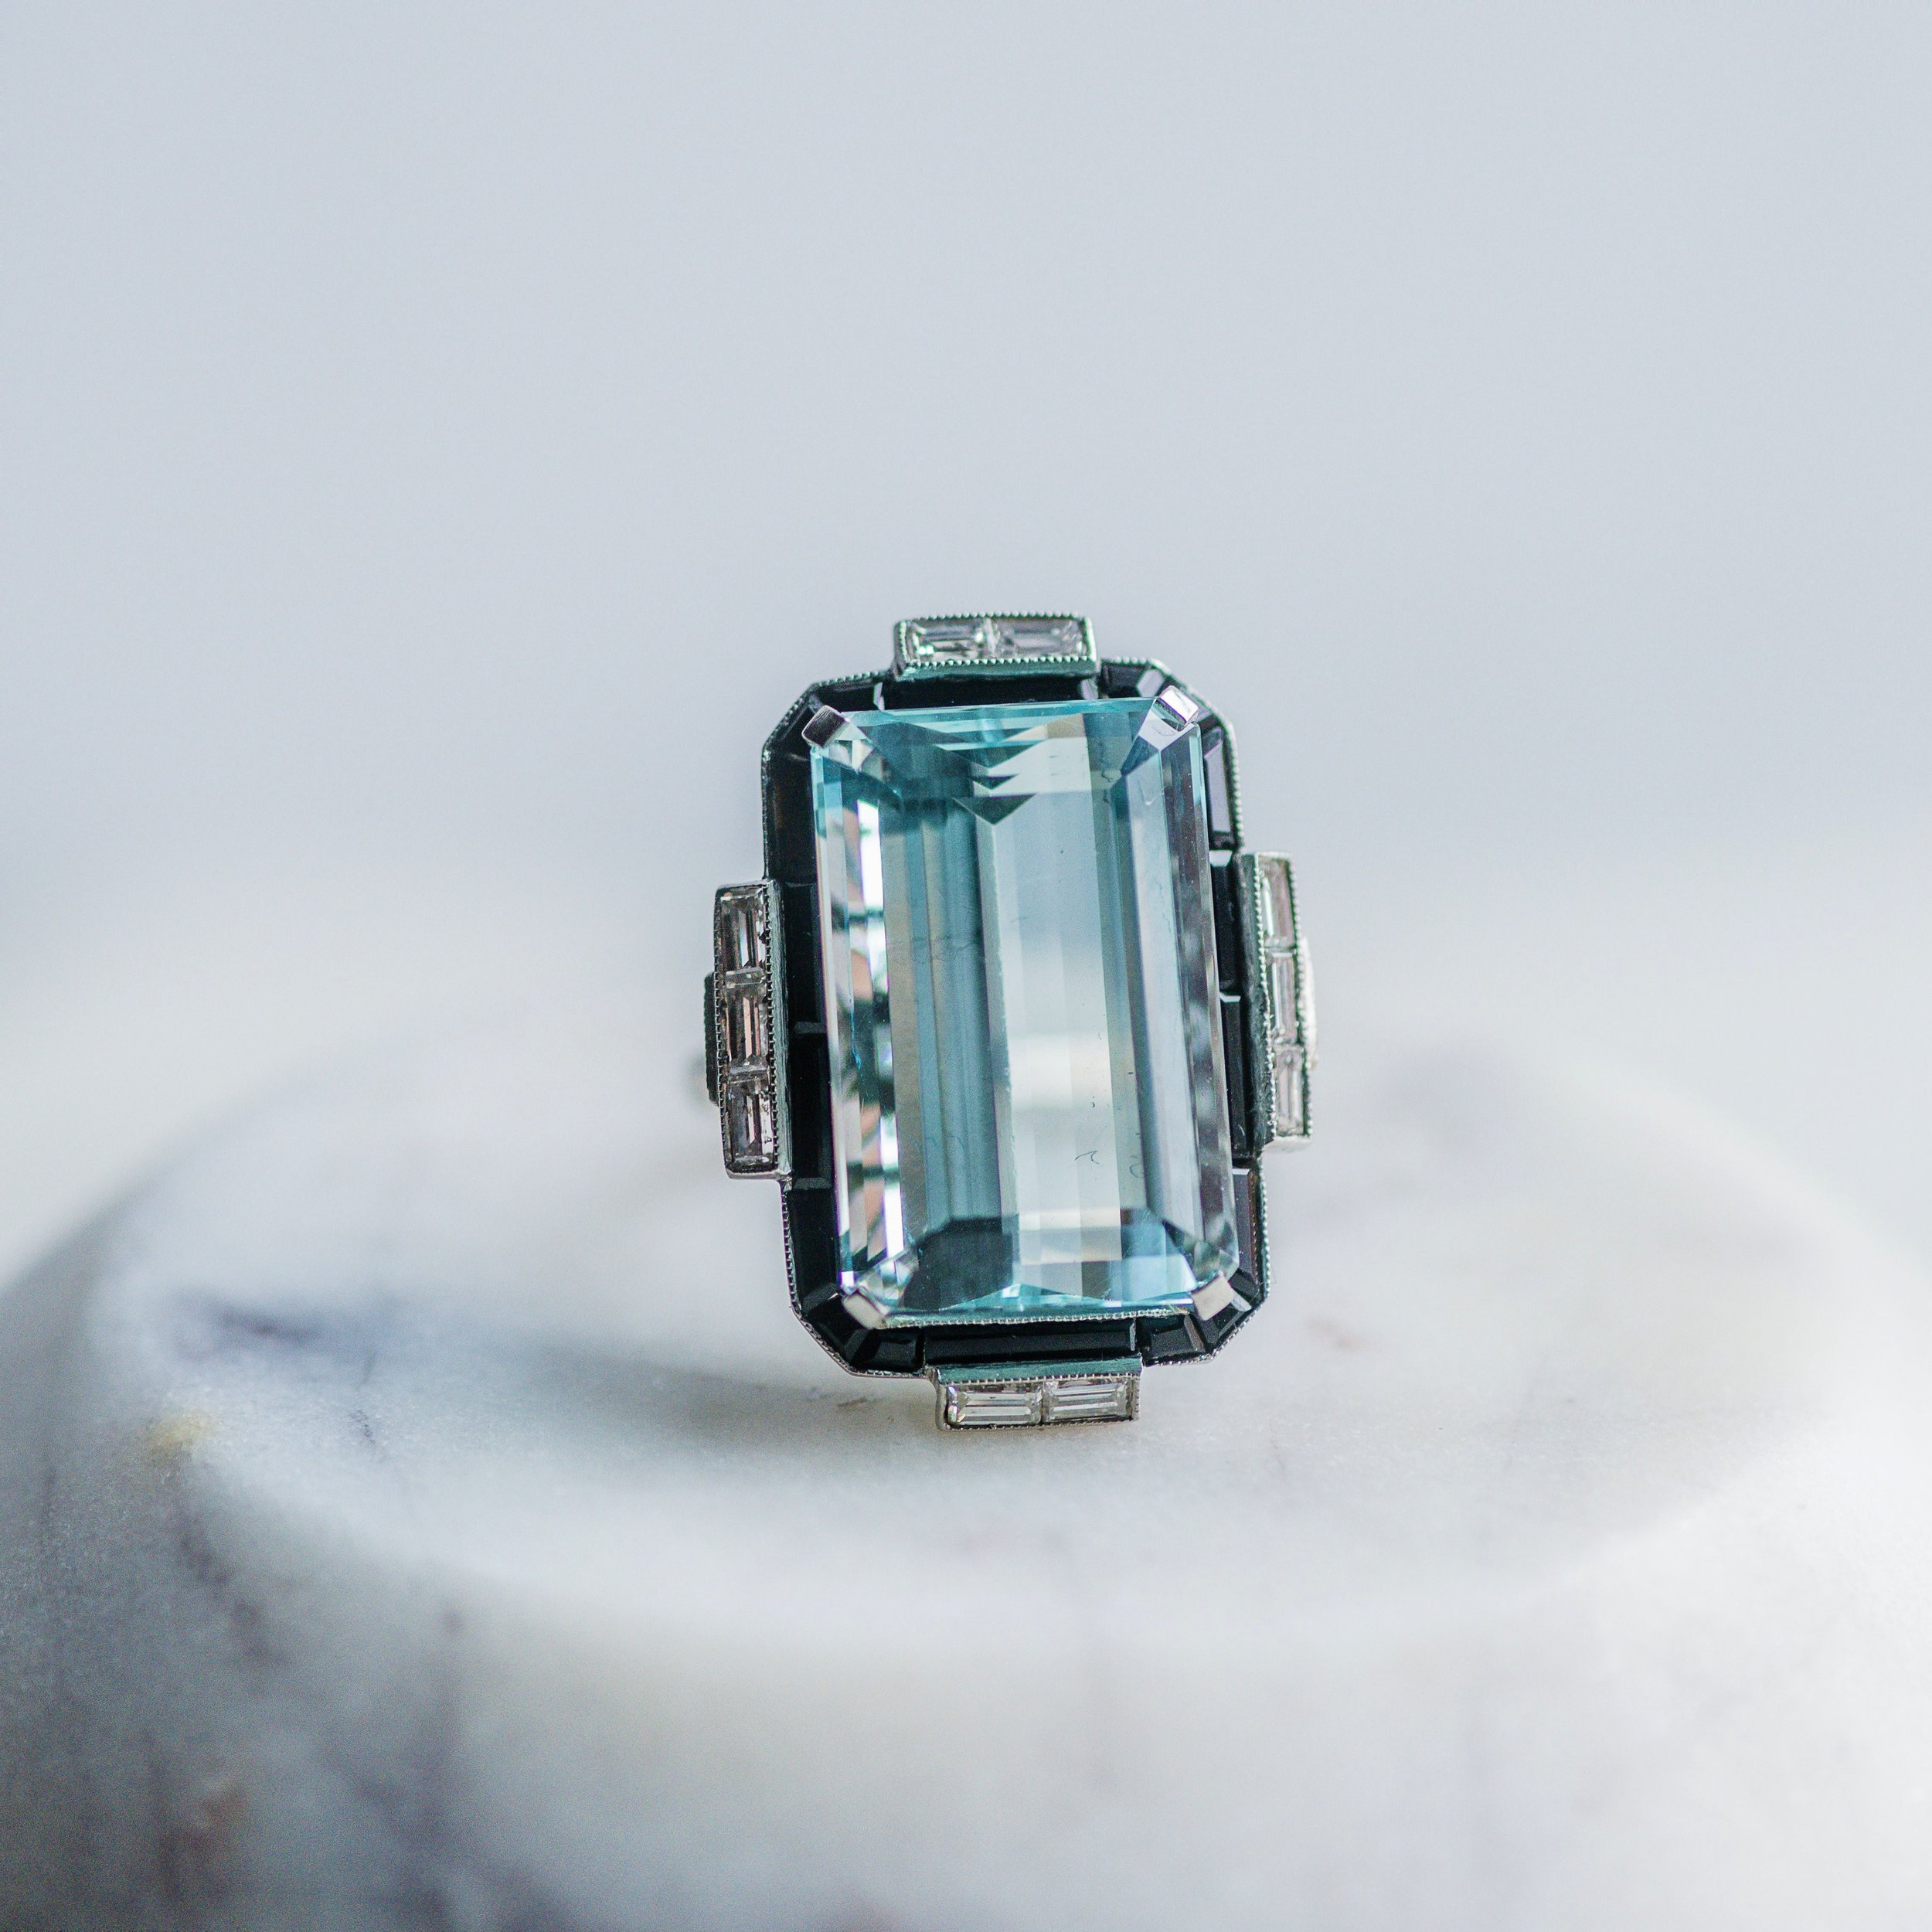 We are just going to stare into the depths of this ocean blue aquamarine and pretend we are on the beach for spring break! Shop this stunning ring  HERE .